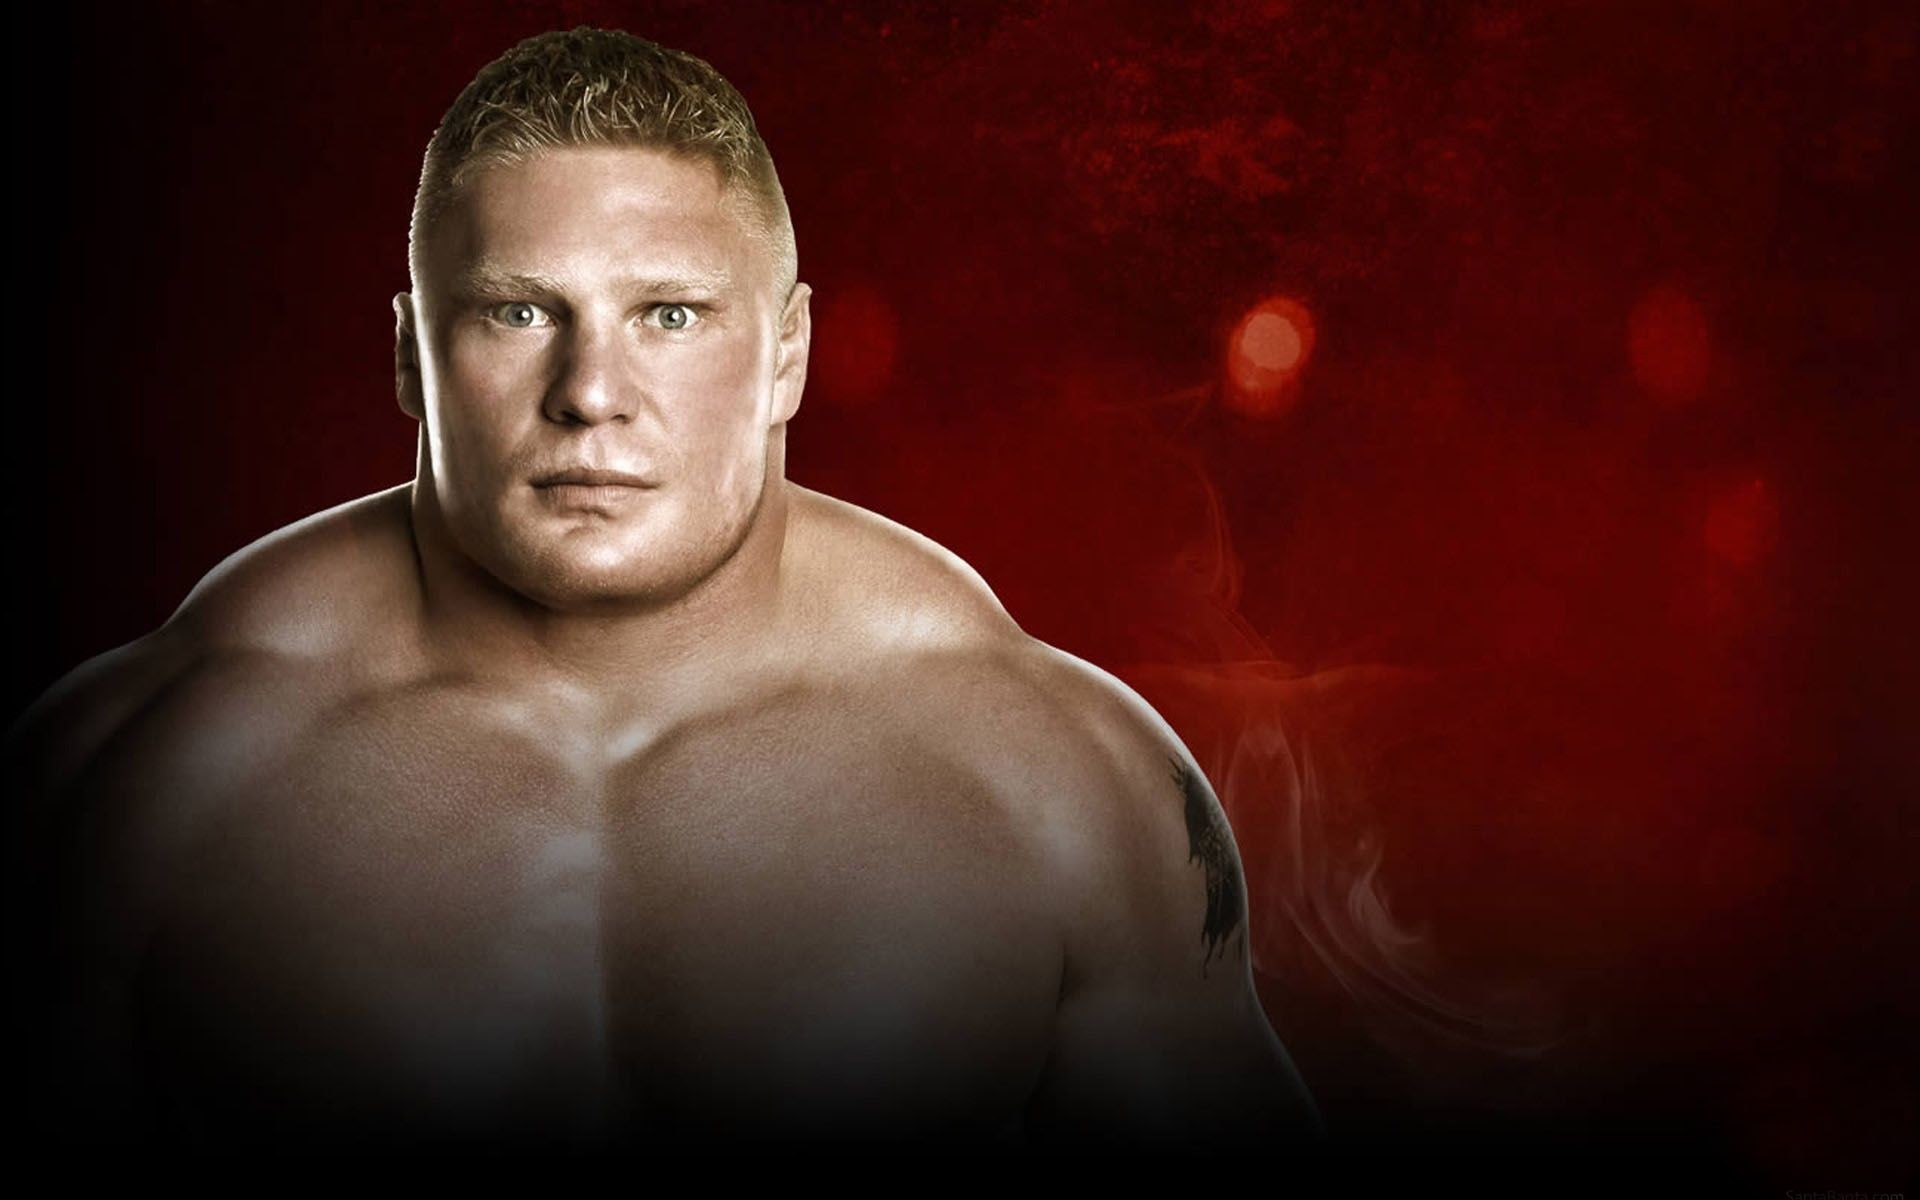 Wwe Brock Lesnar Wallpapers 82 Background Pictures